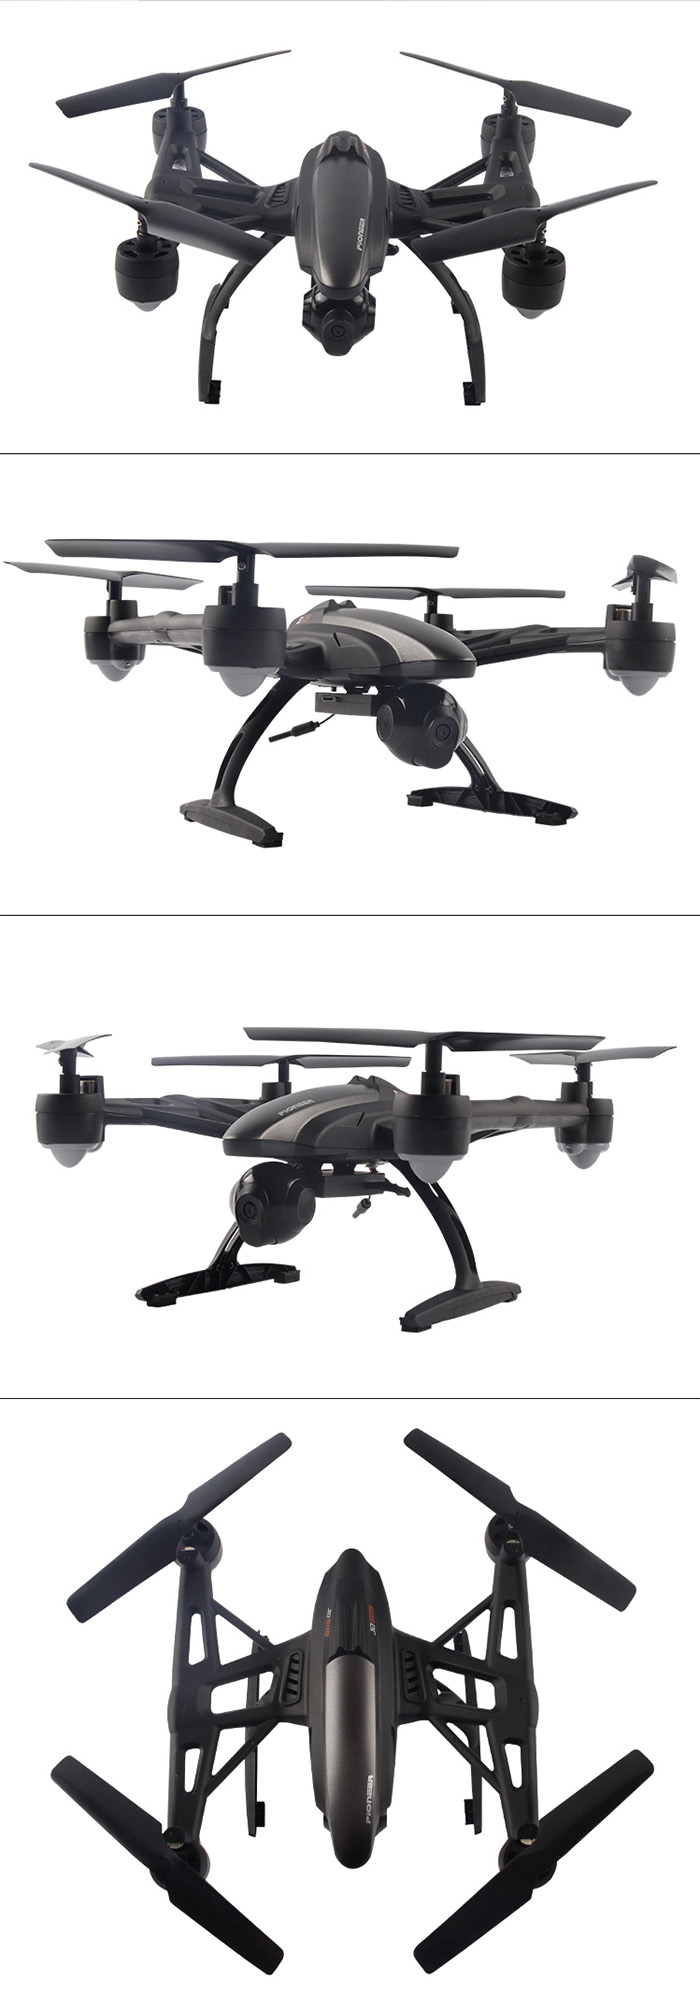 Jxd 509g 58g 092mp Camera Rc Quadcopter 9063 Free Shipping Bayangtoys Drone X 16 With Gps Wifi 2 Mega Pixel Putih Real Time Fpv Headless Mode Light